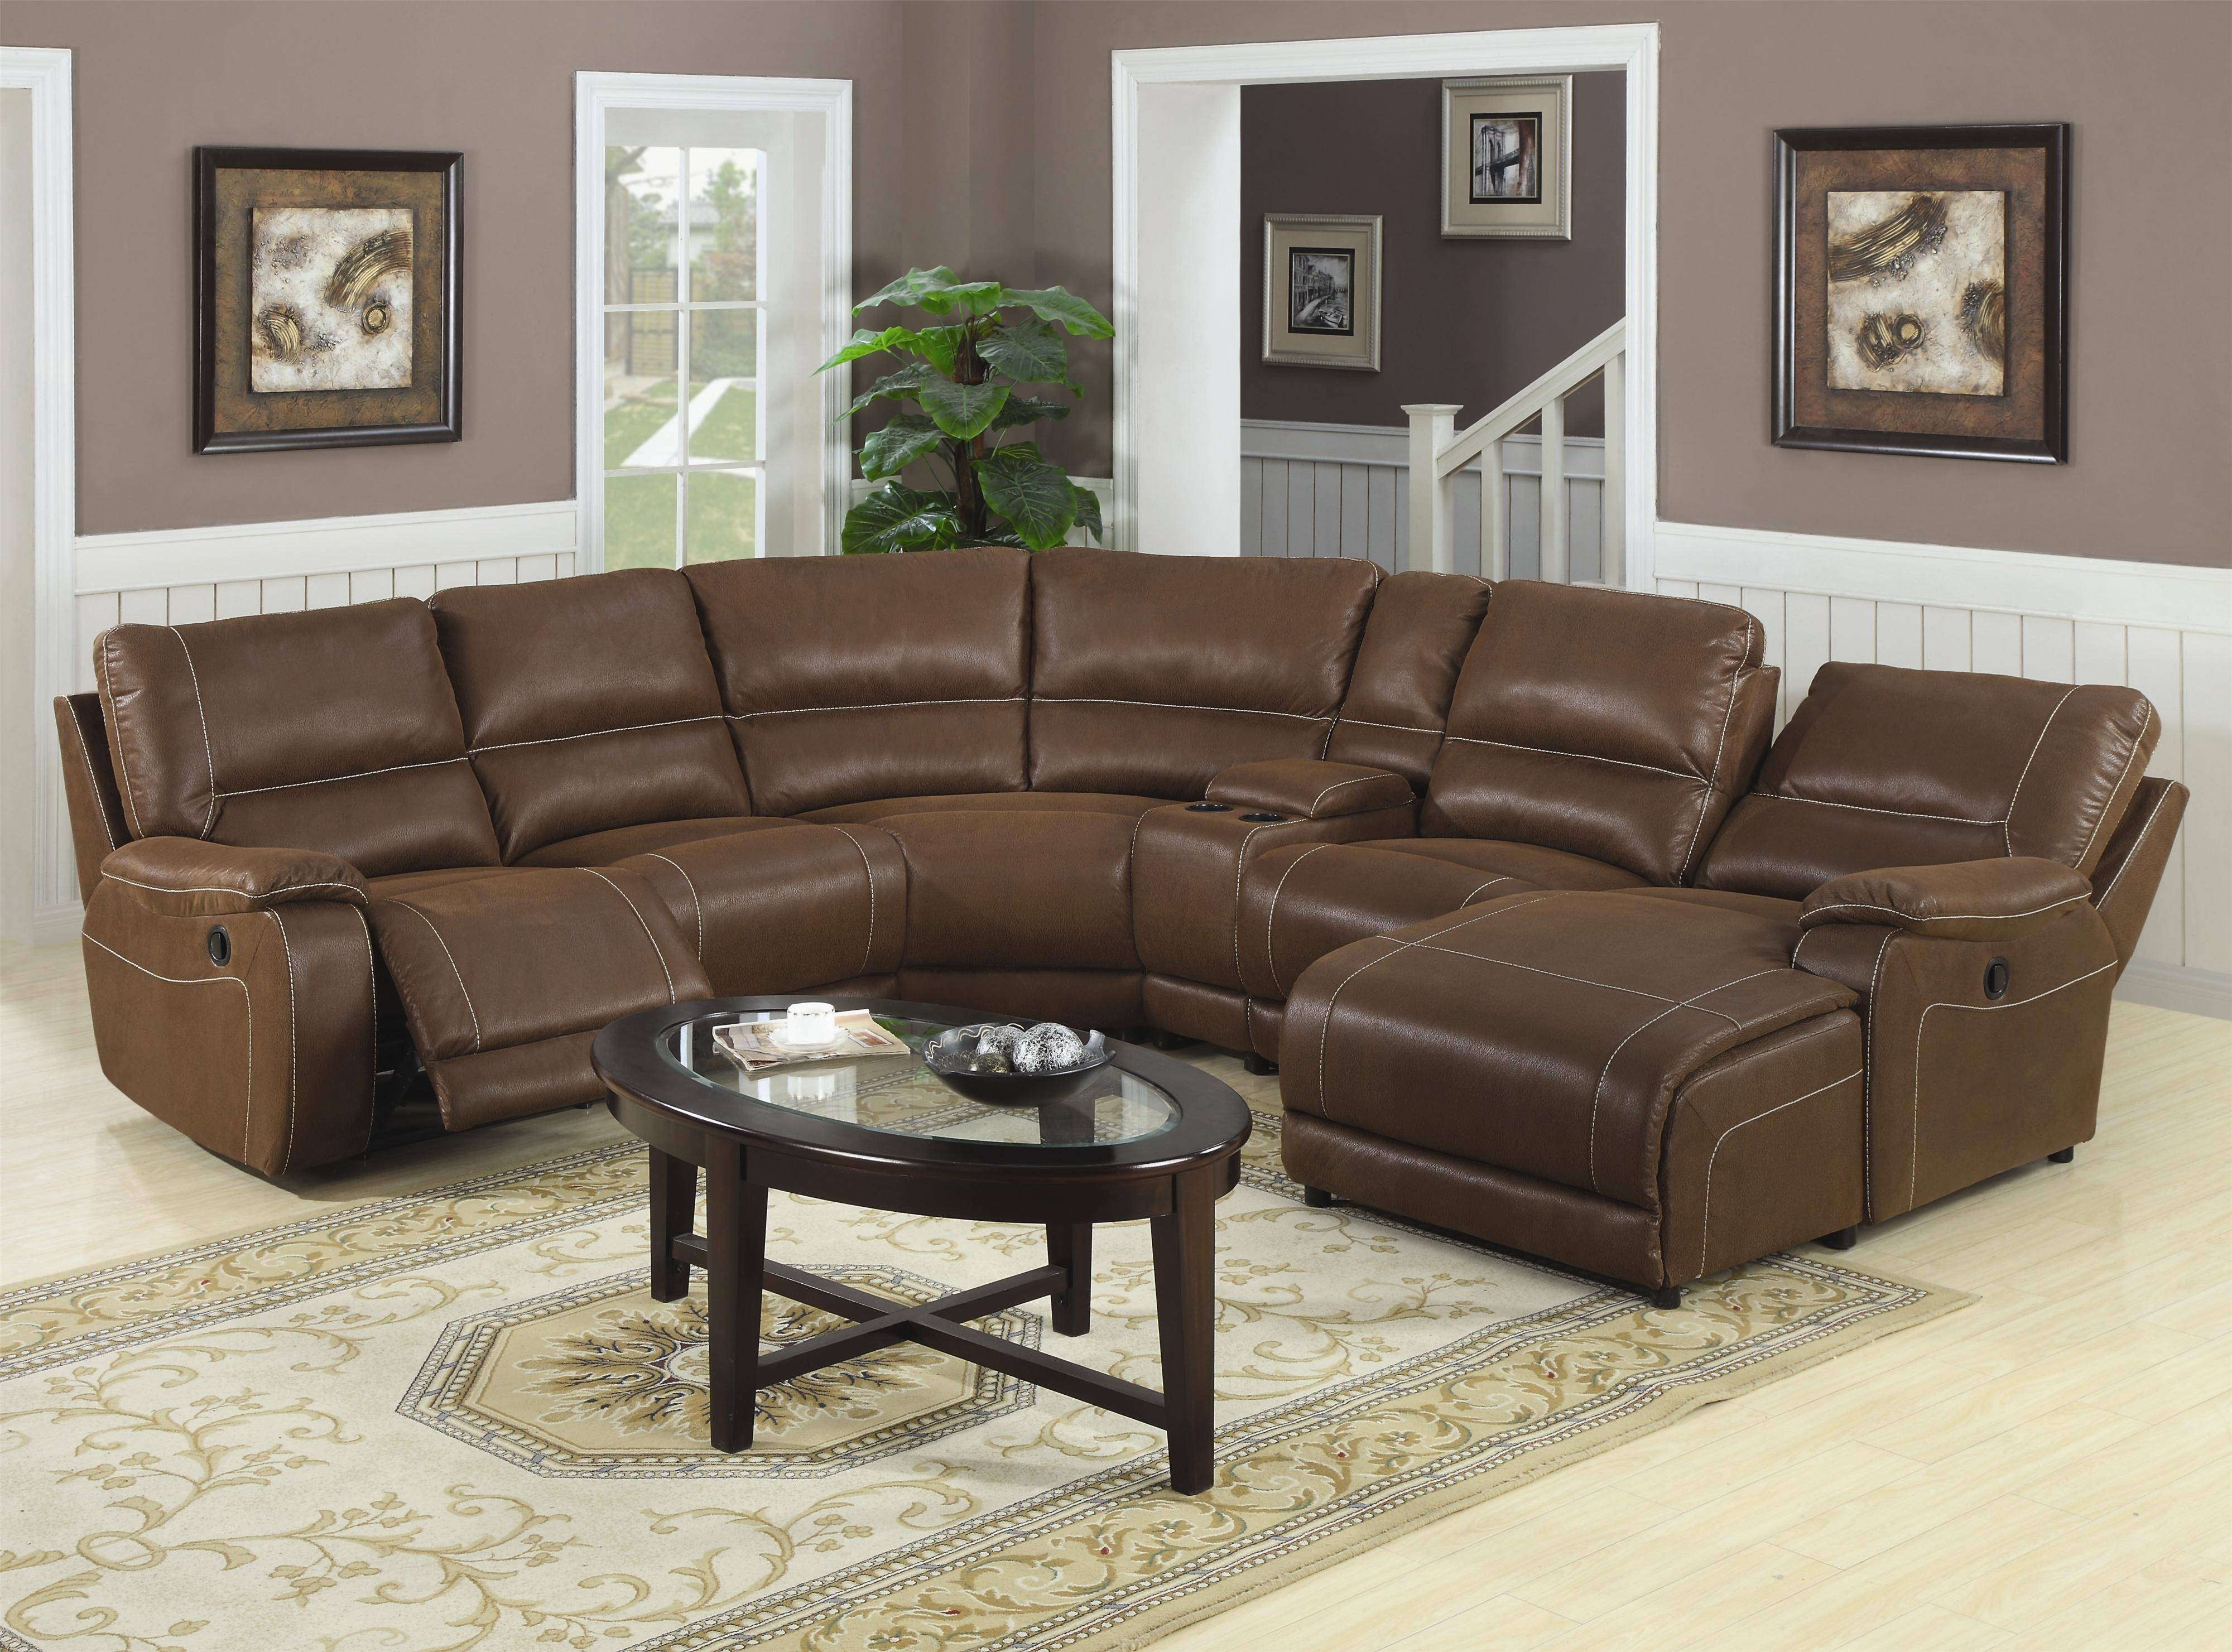 Furniture: Incredible Style Sectional Reclining Sofas For Your for Sectional Sofa Recliners (Image 9 of 30)